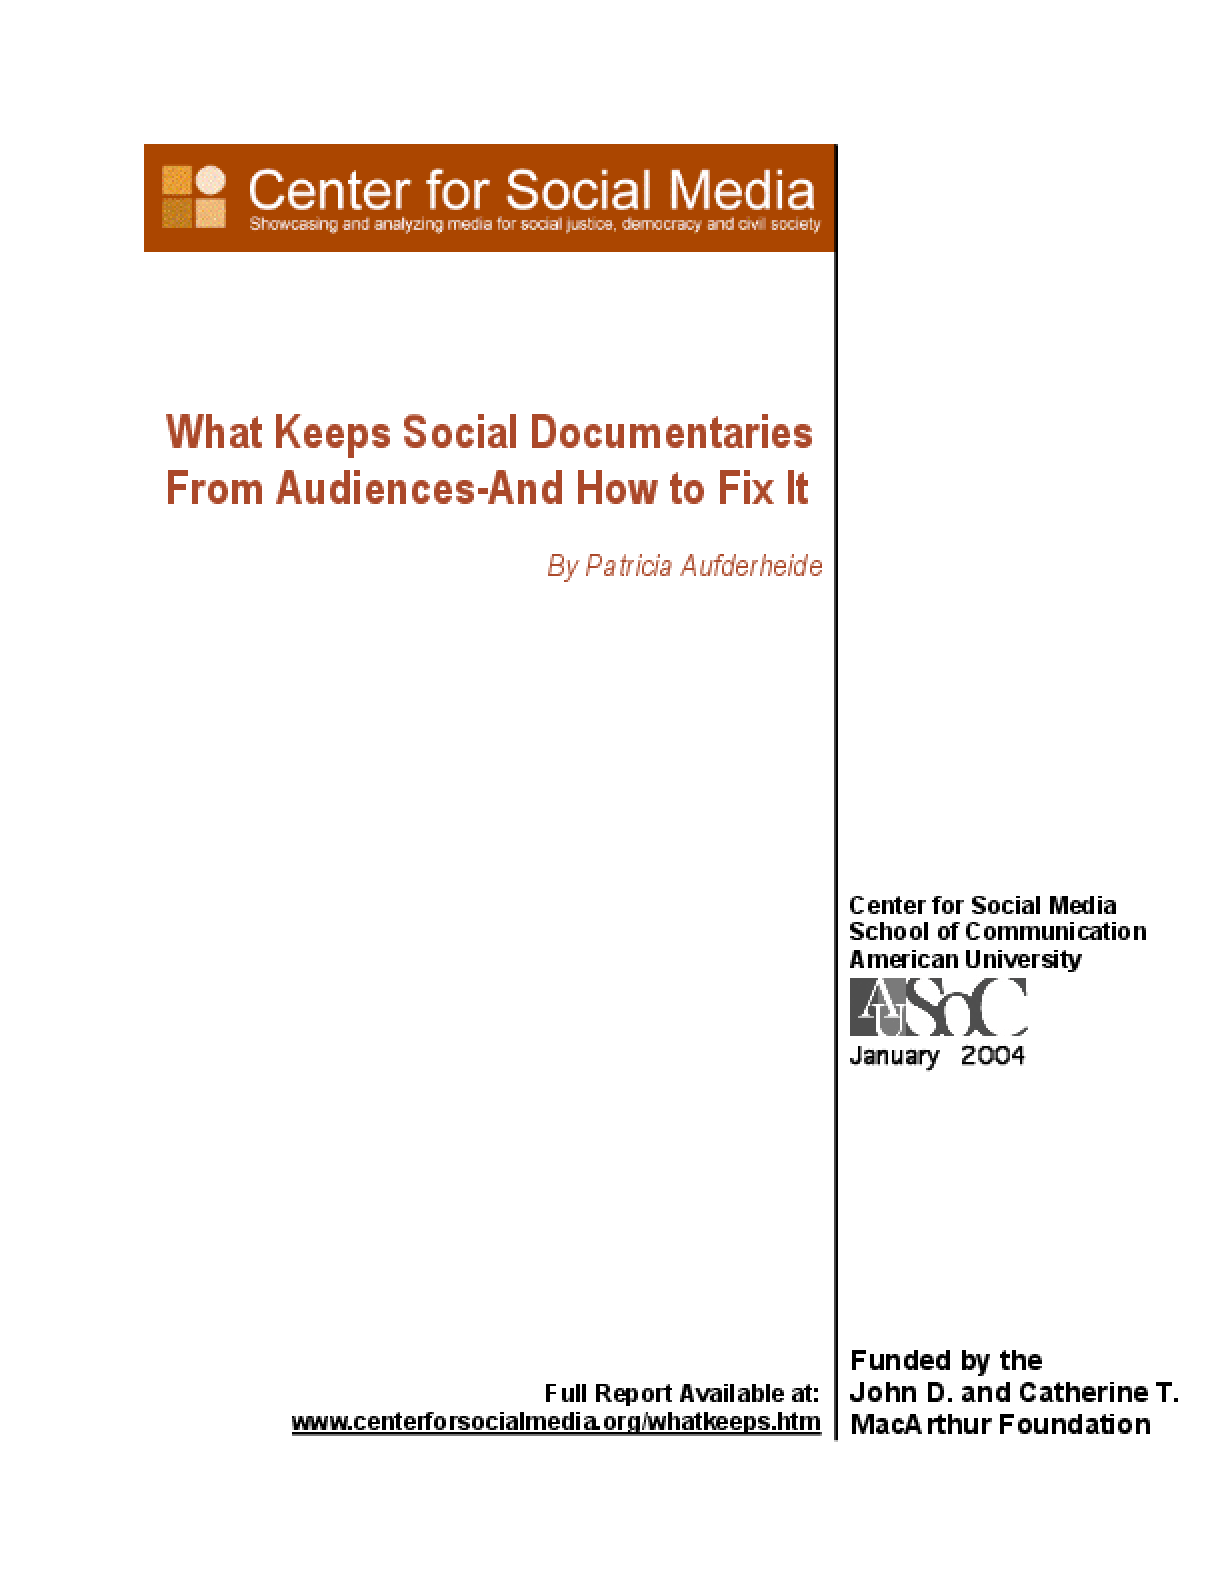 What Keeps Social Documentaries from Audiences -- And How to Fix It